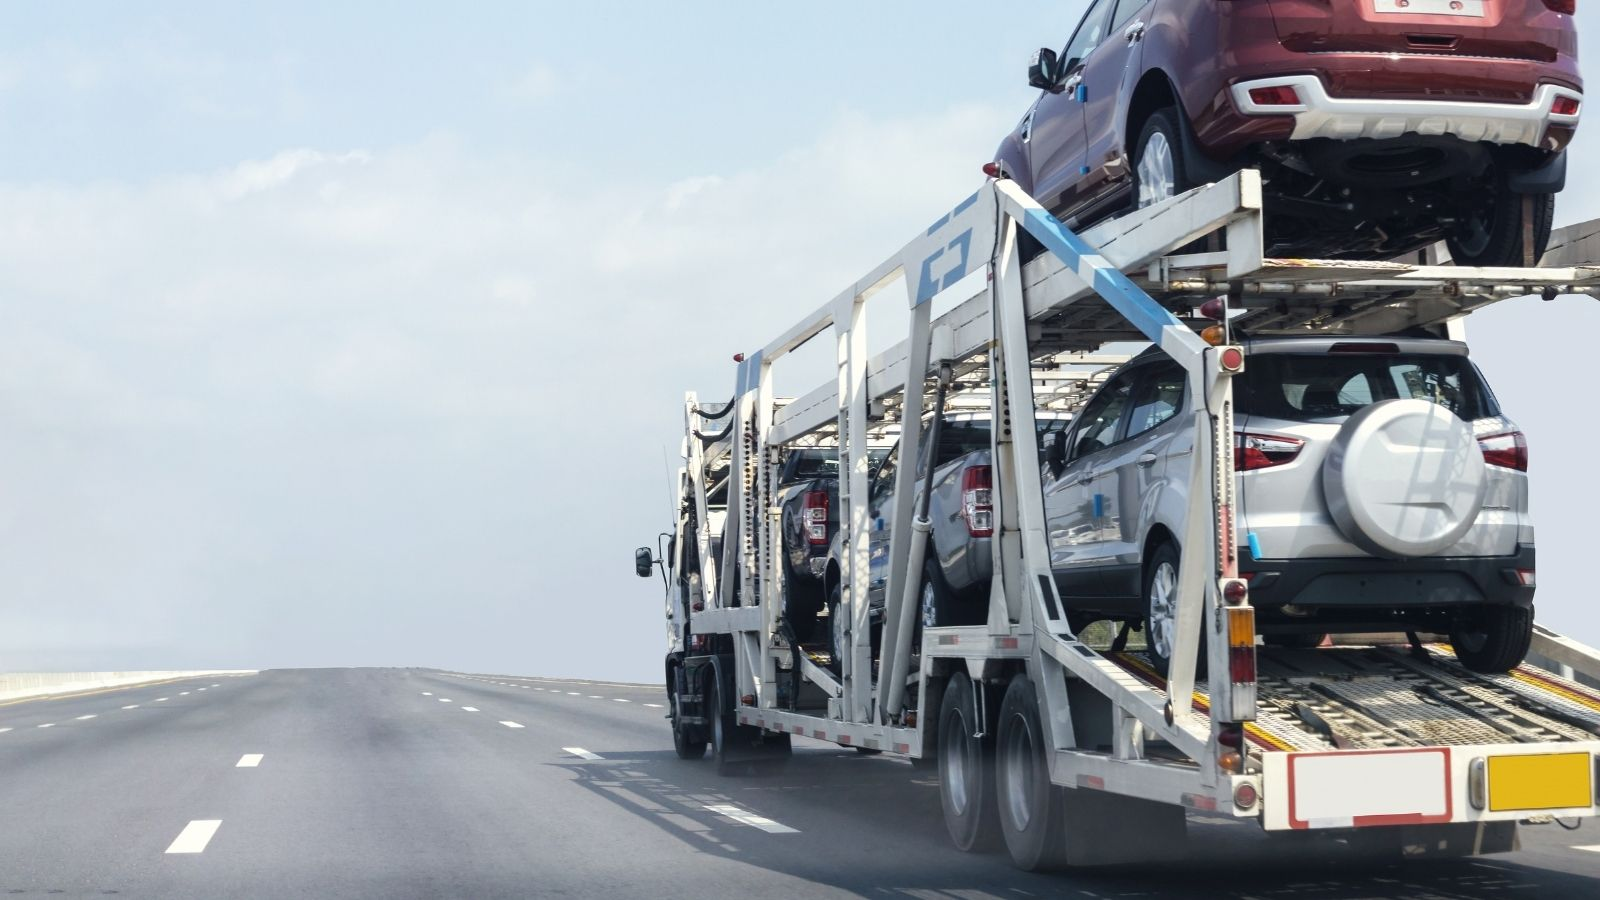 Reasons To Hire a Long-Distance Car Transport Service